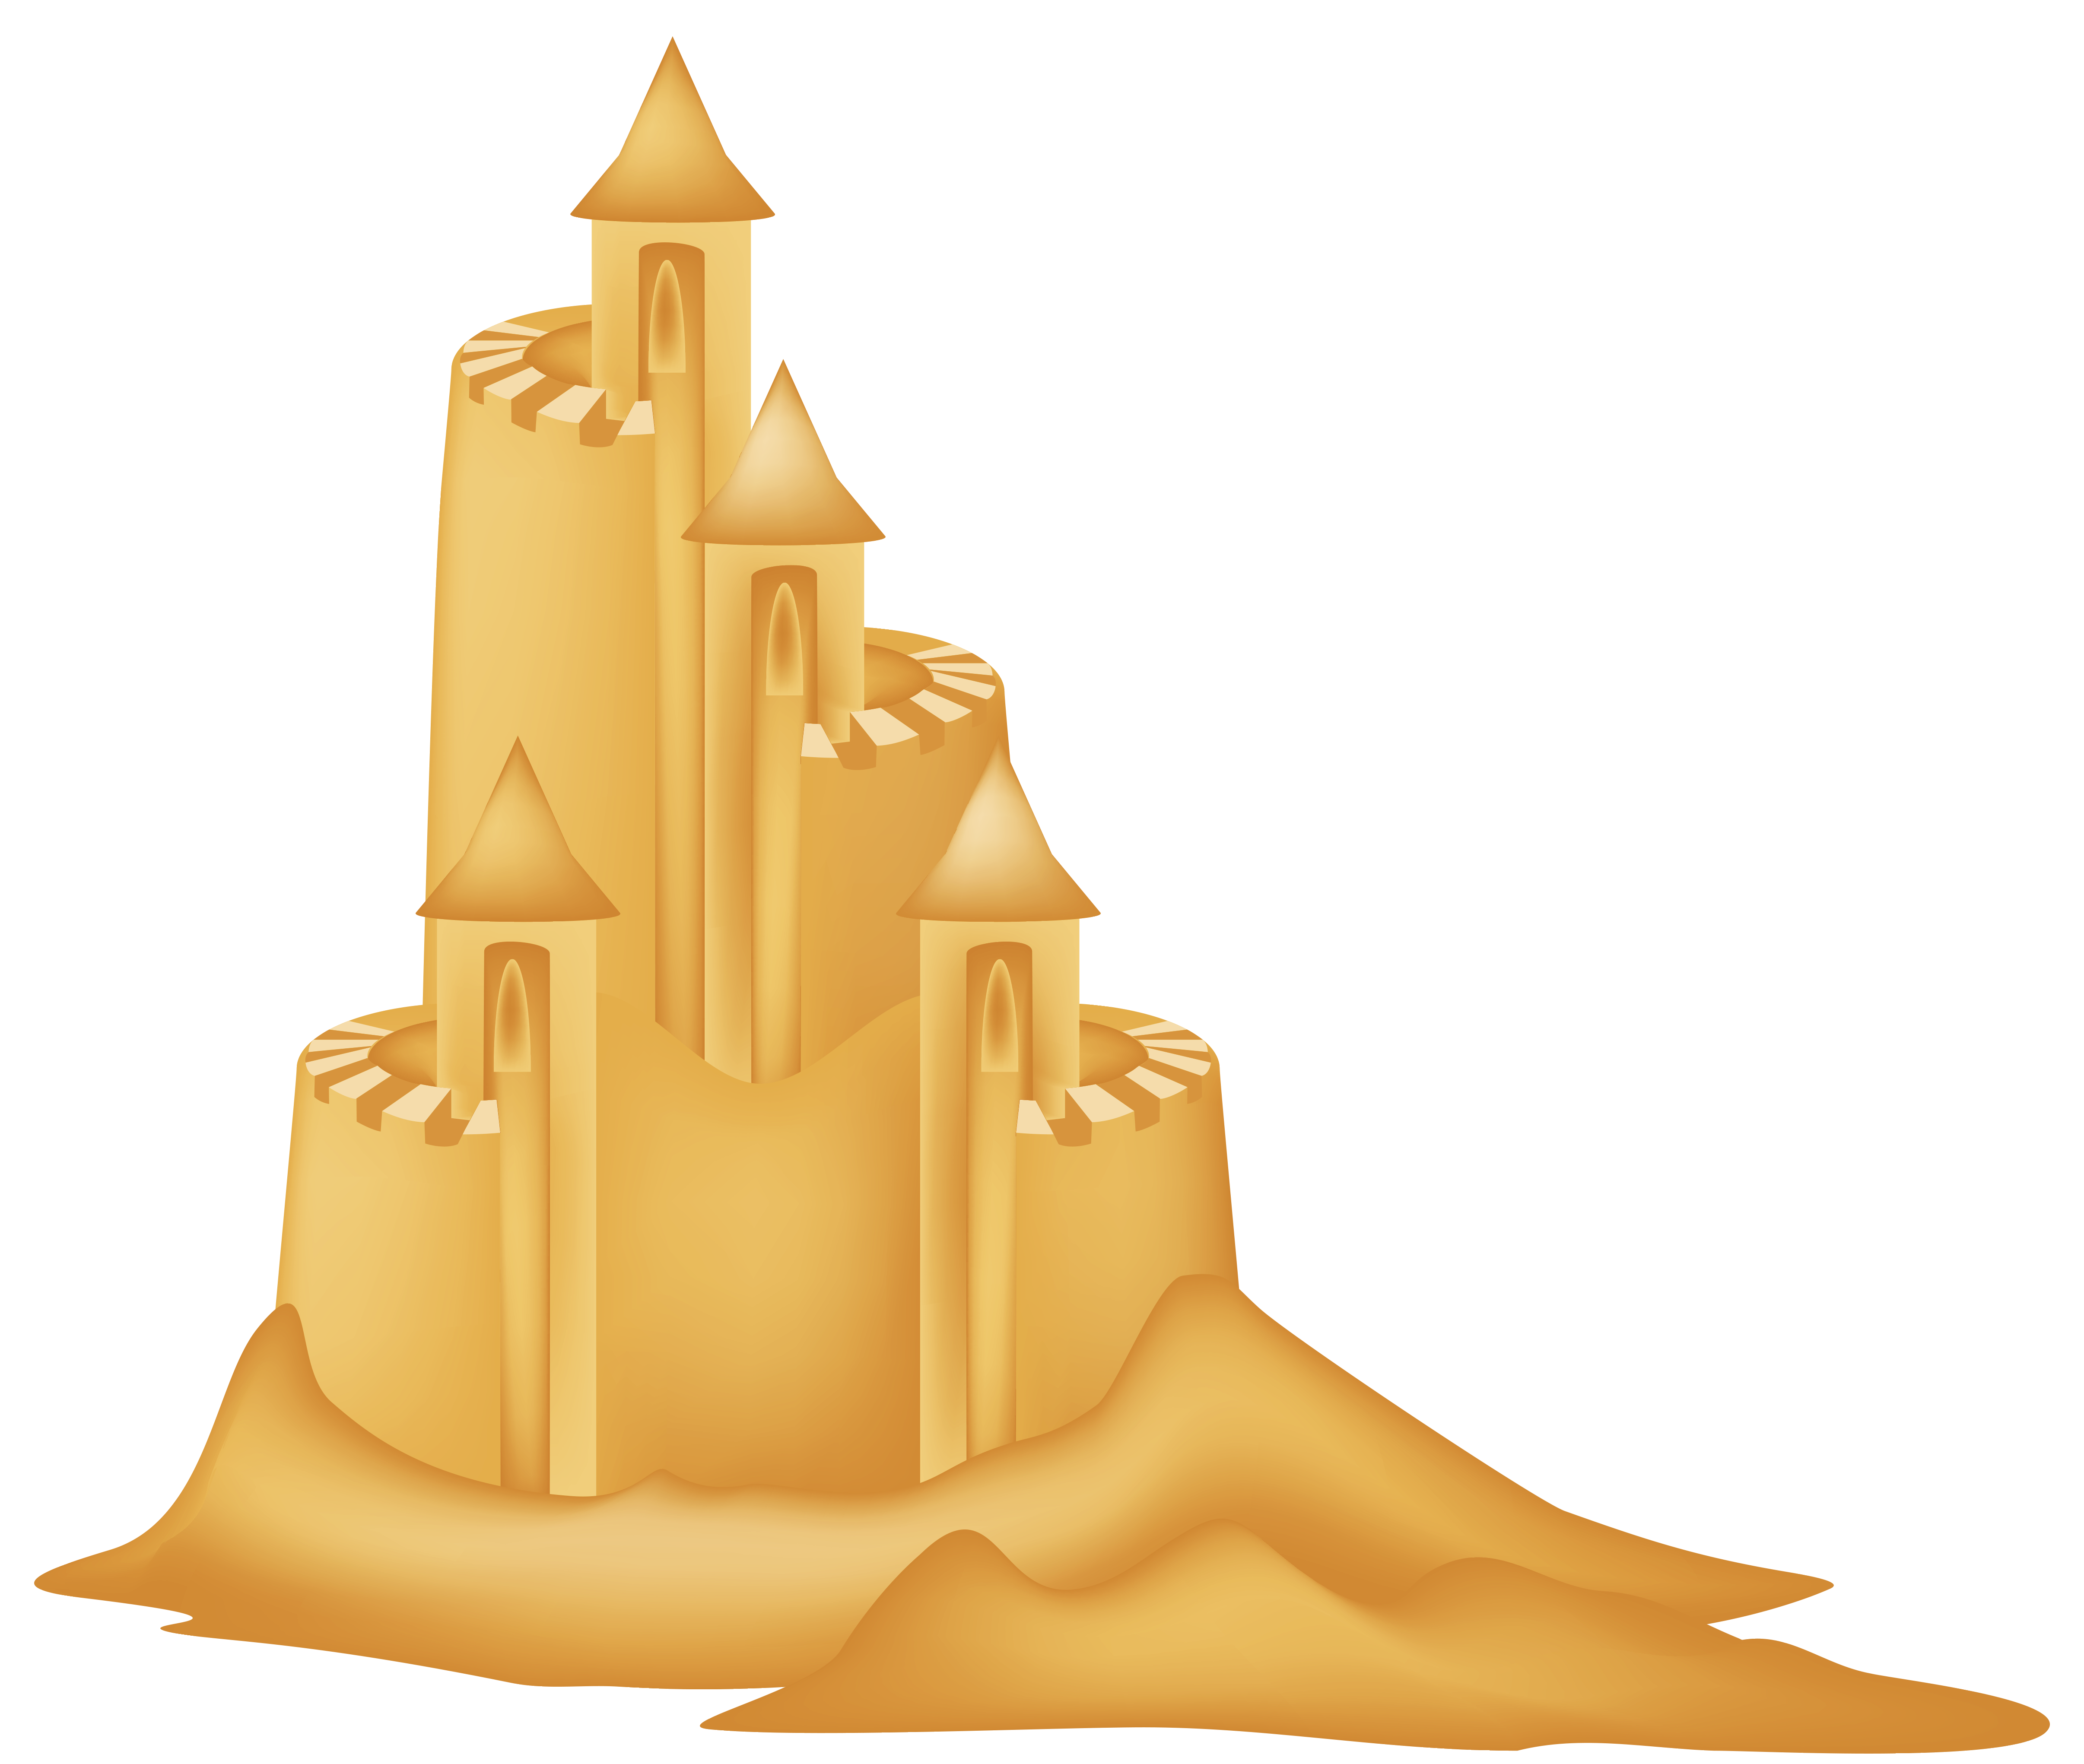 4824x4084 Sand Castle Png Clipart Pictureu200b Gallery Yopriceville